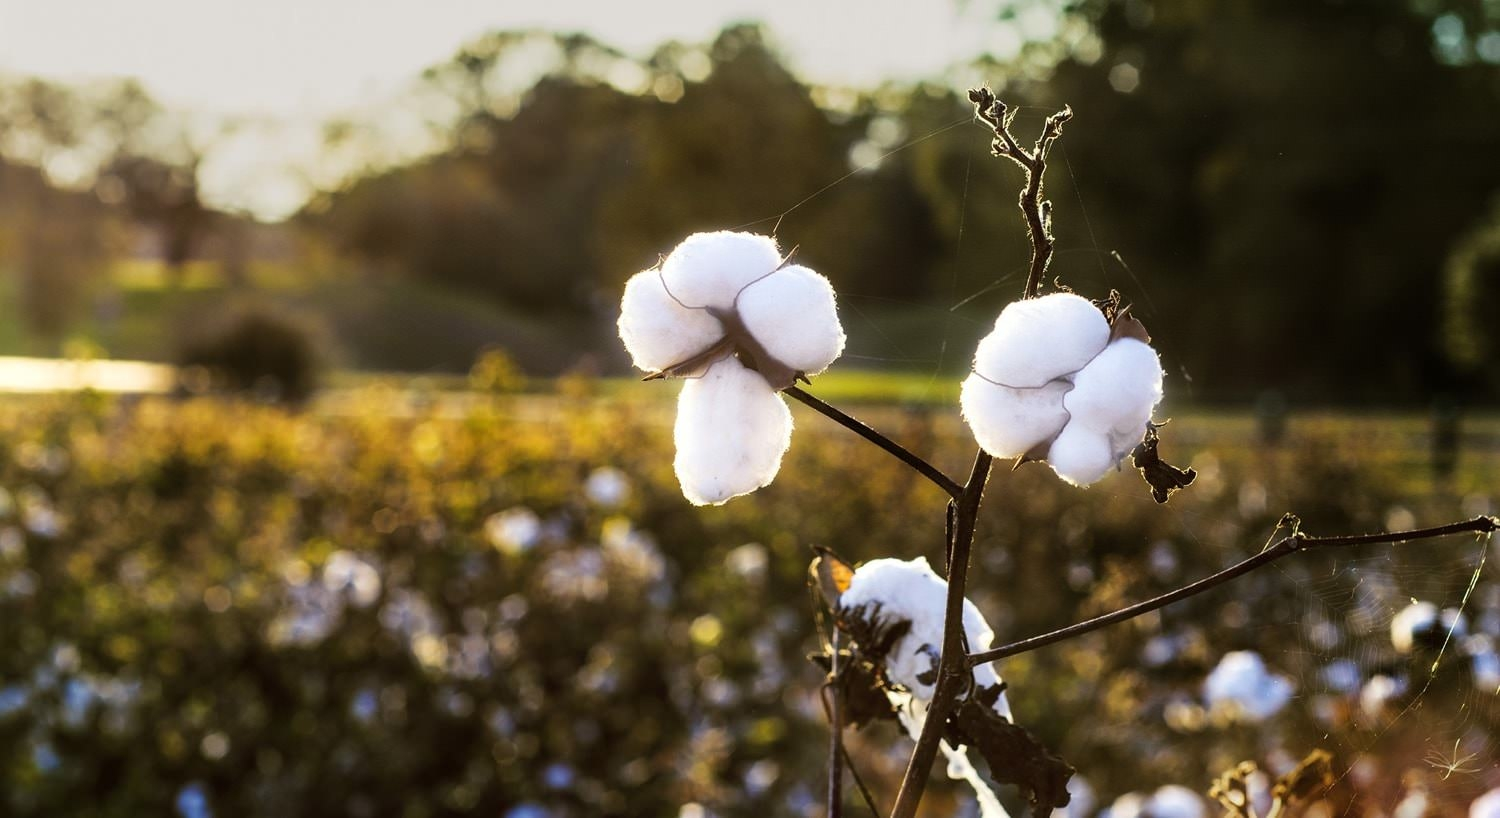 White cotton plants overlooking a field during the sunset